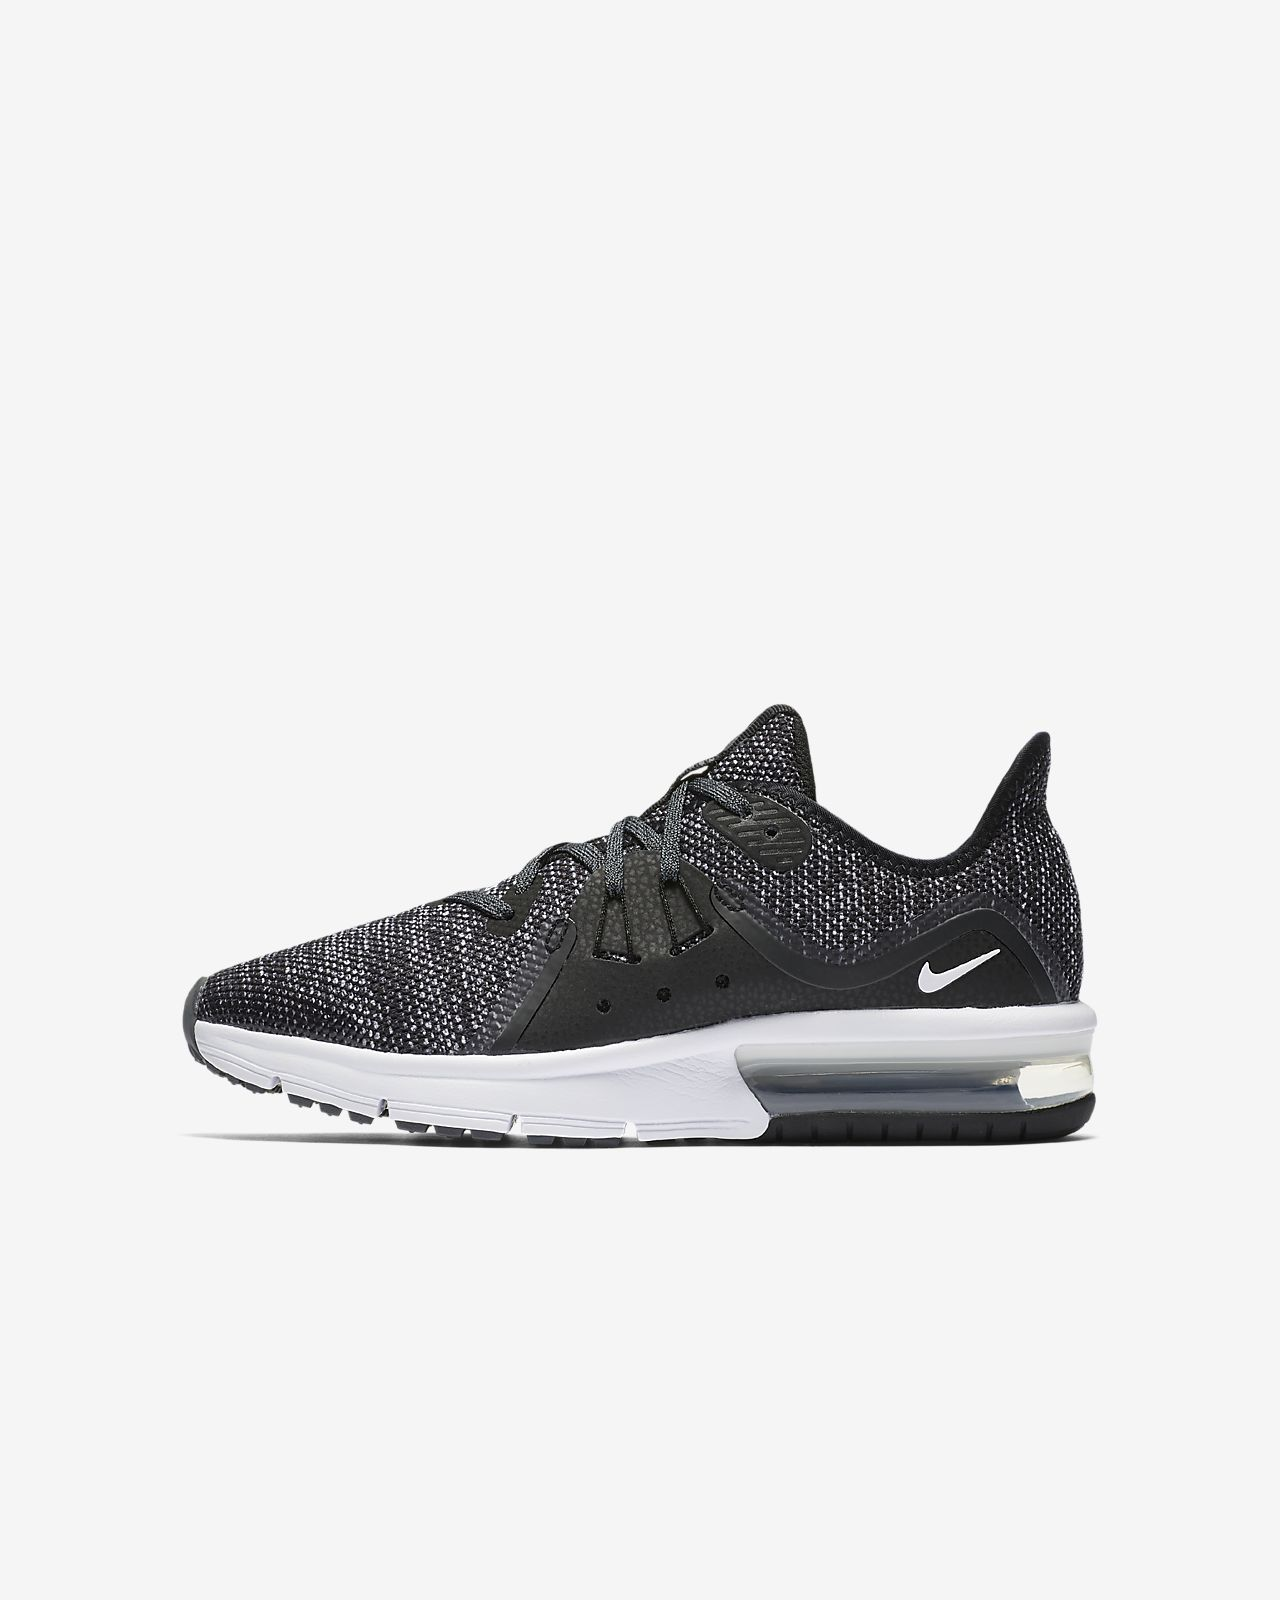 45a5d0fb16 Nike Air Max Sequent 3 Zapatillas - Niño a. Nike.com ES